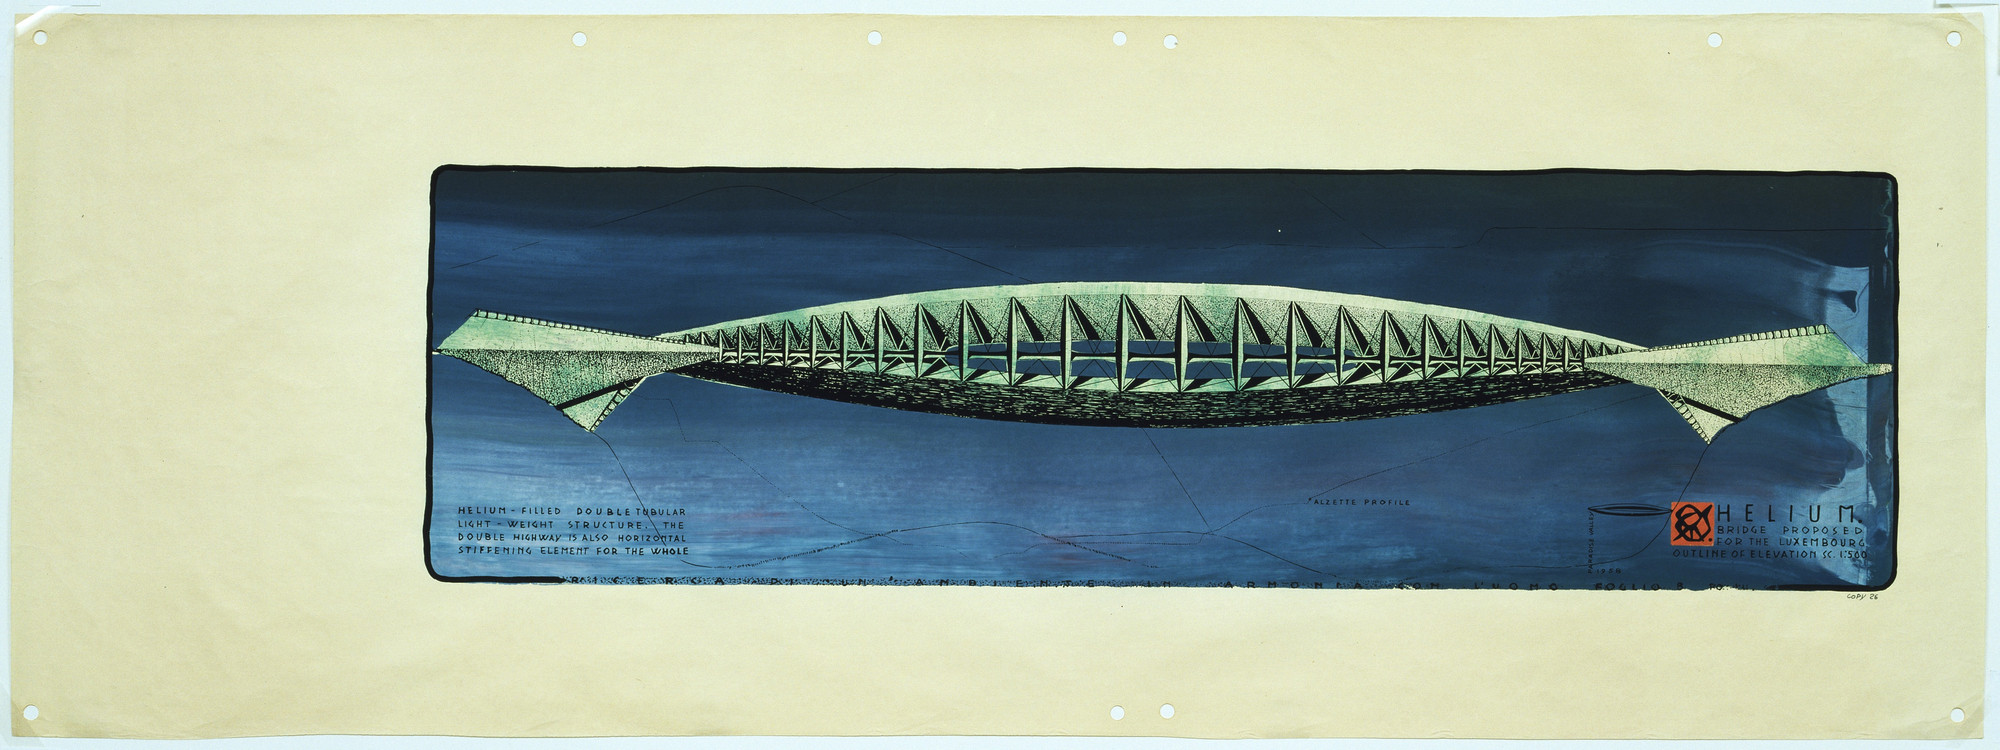 Paolo Soleri. Helium Bridge Project. 1958